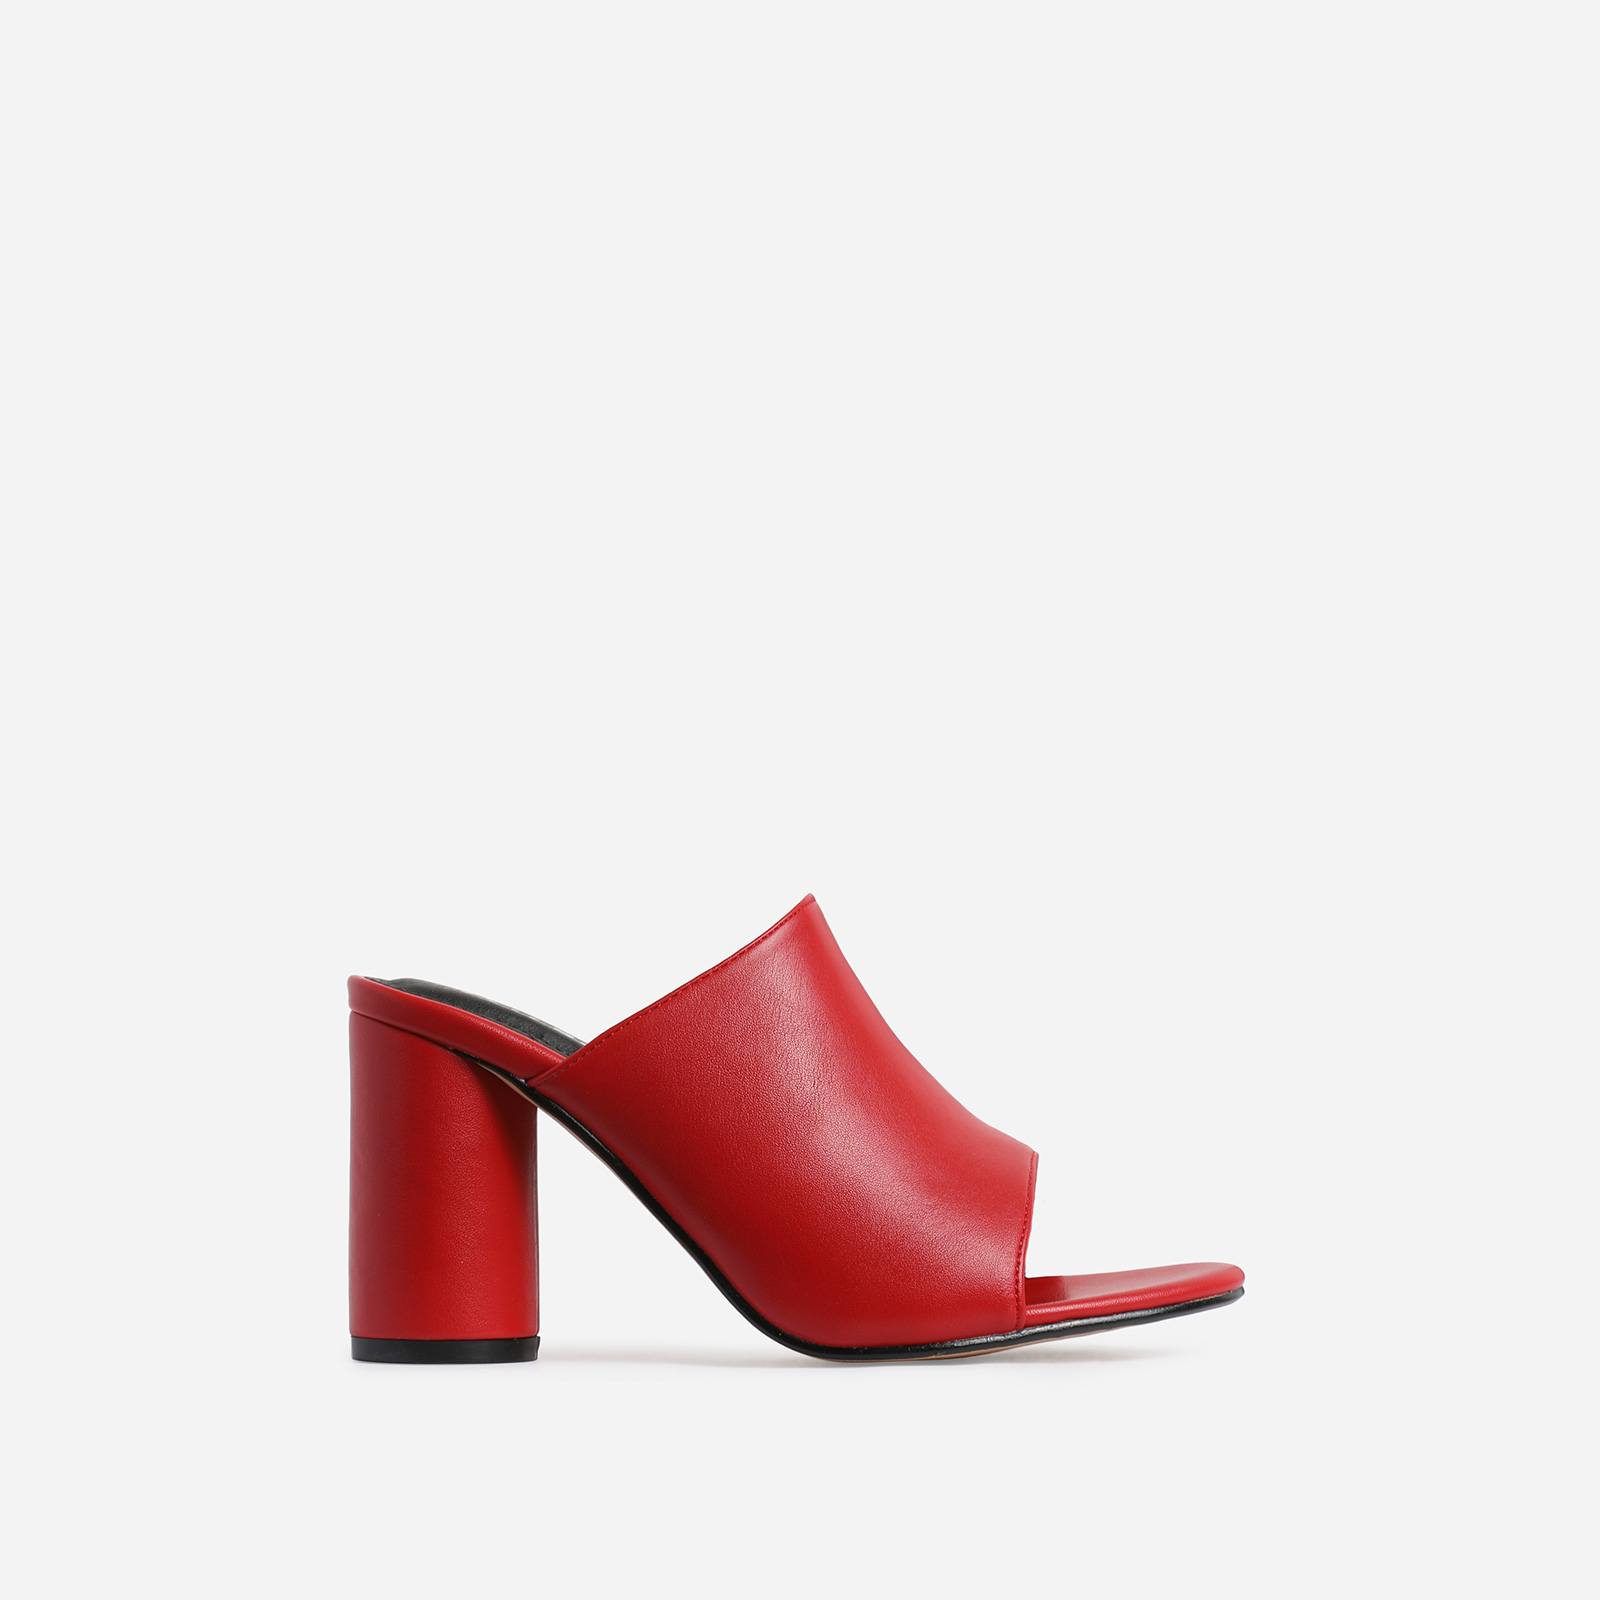 Virgo Peep Toe Block Heel Mule In Red Faux Leather